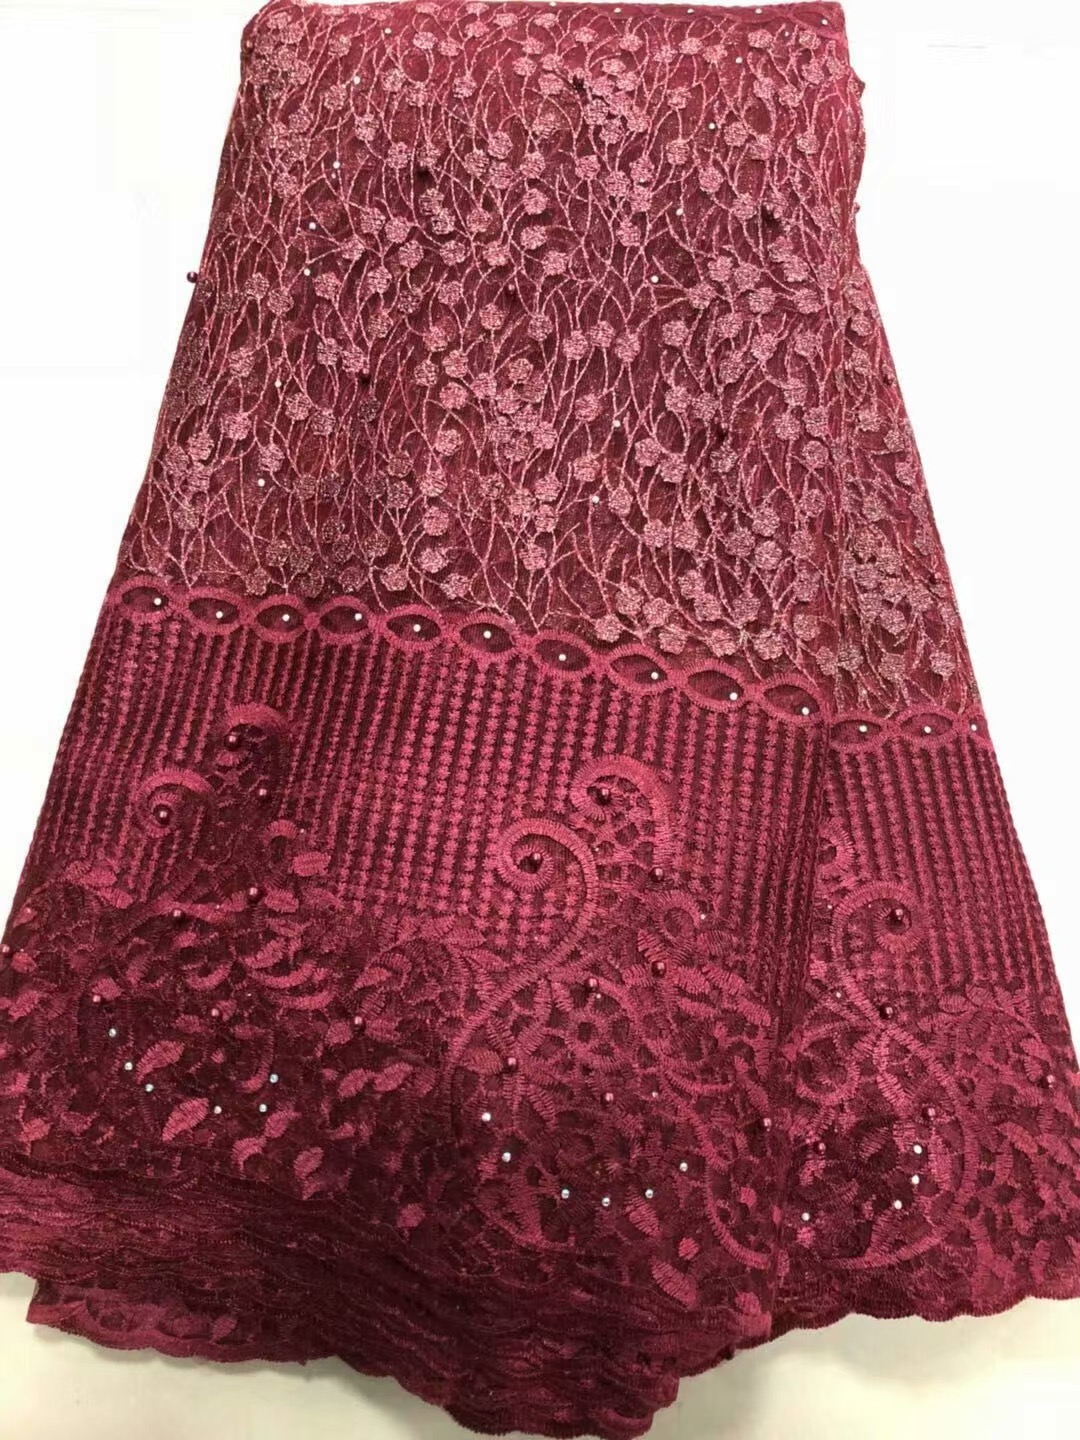 Apparel Sewing & Fabric Competent 2019 Latest Nigerian Wine Red Laces Fabrics High Quality African Laces Fabric For Wedding Dress French Tulle Lace Fy3036 Yet Not Vulgar